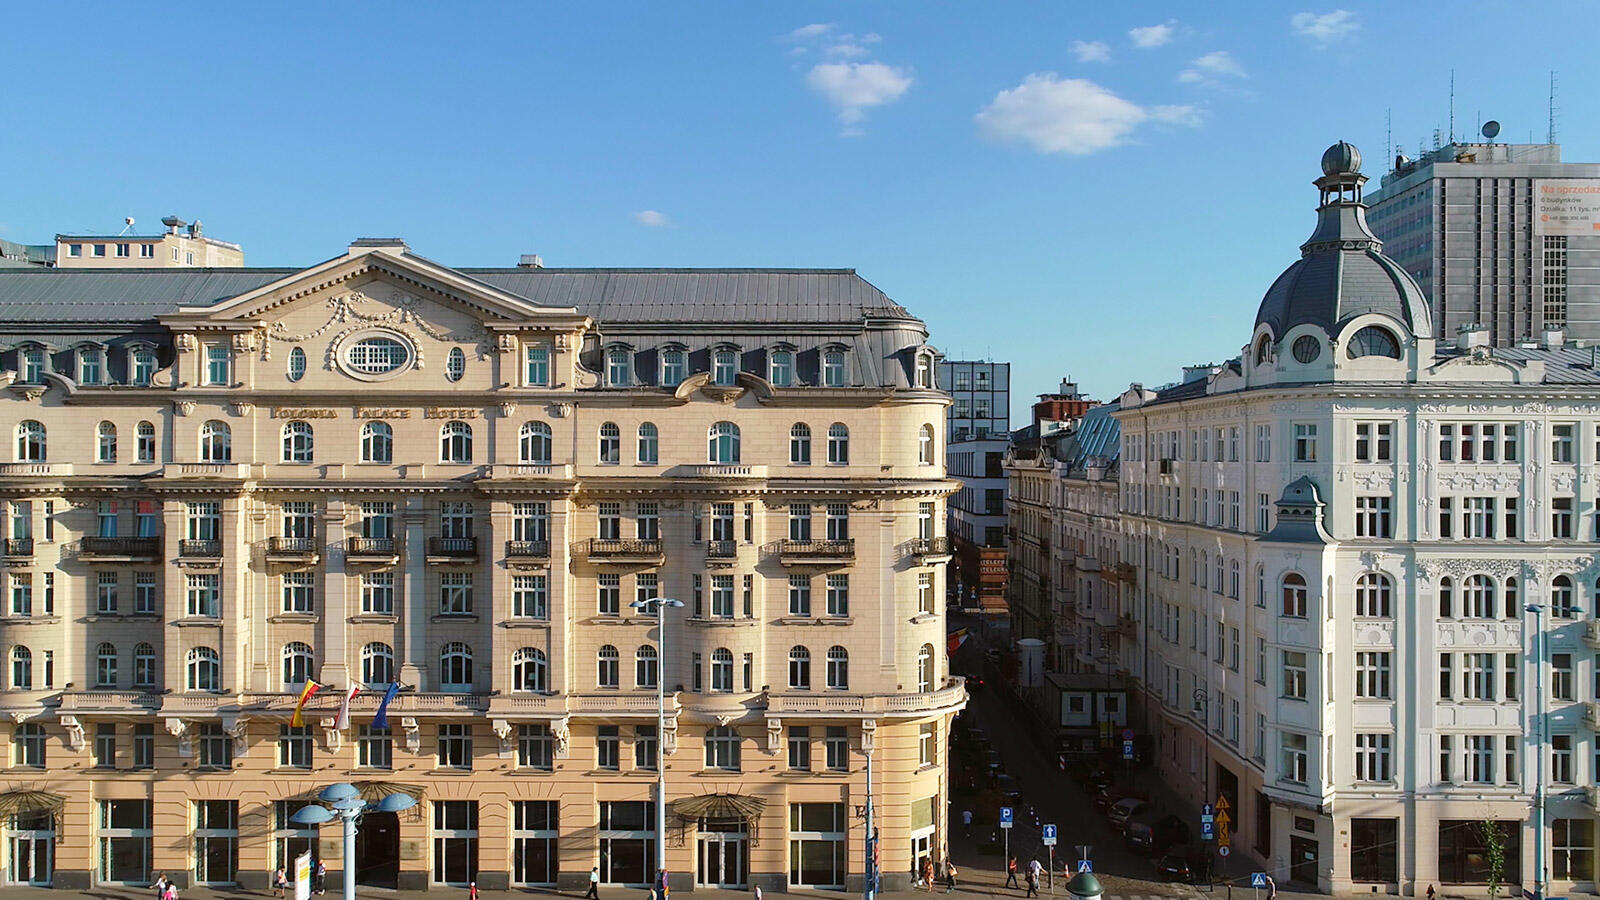 Polonia Palace Hotel, Warsaw